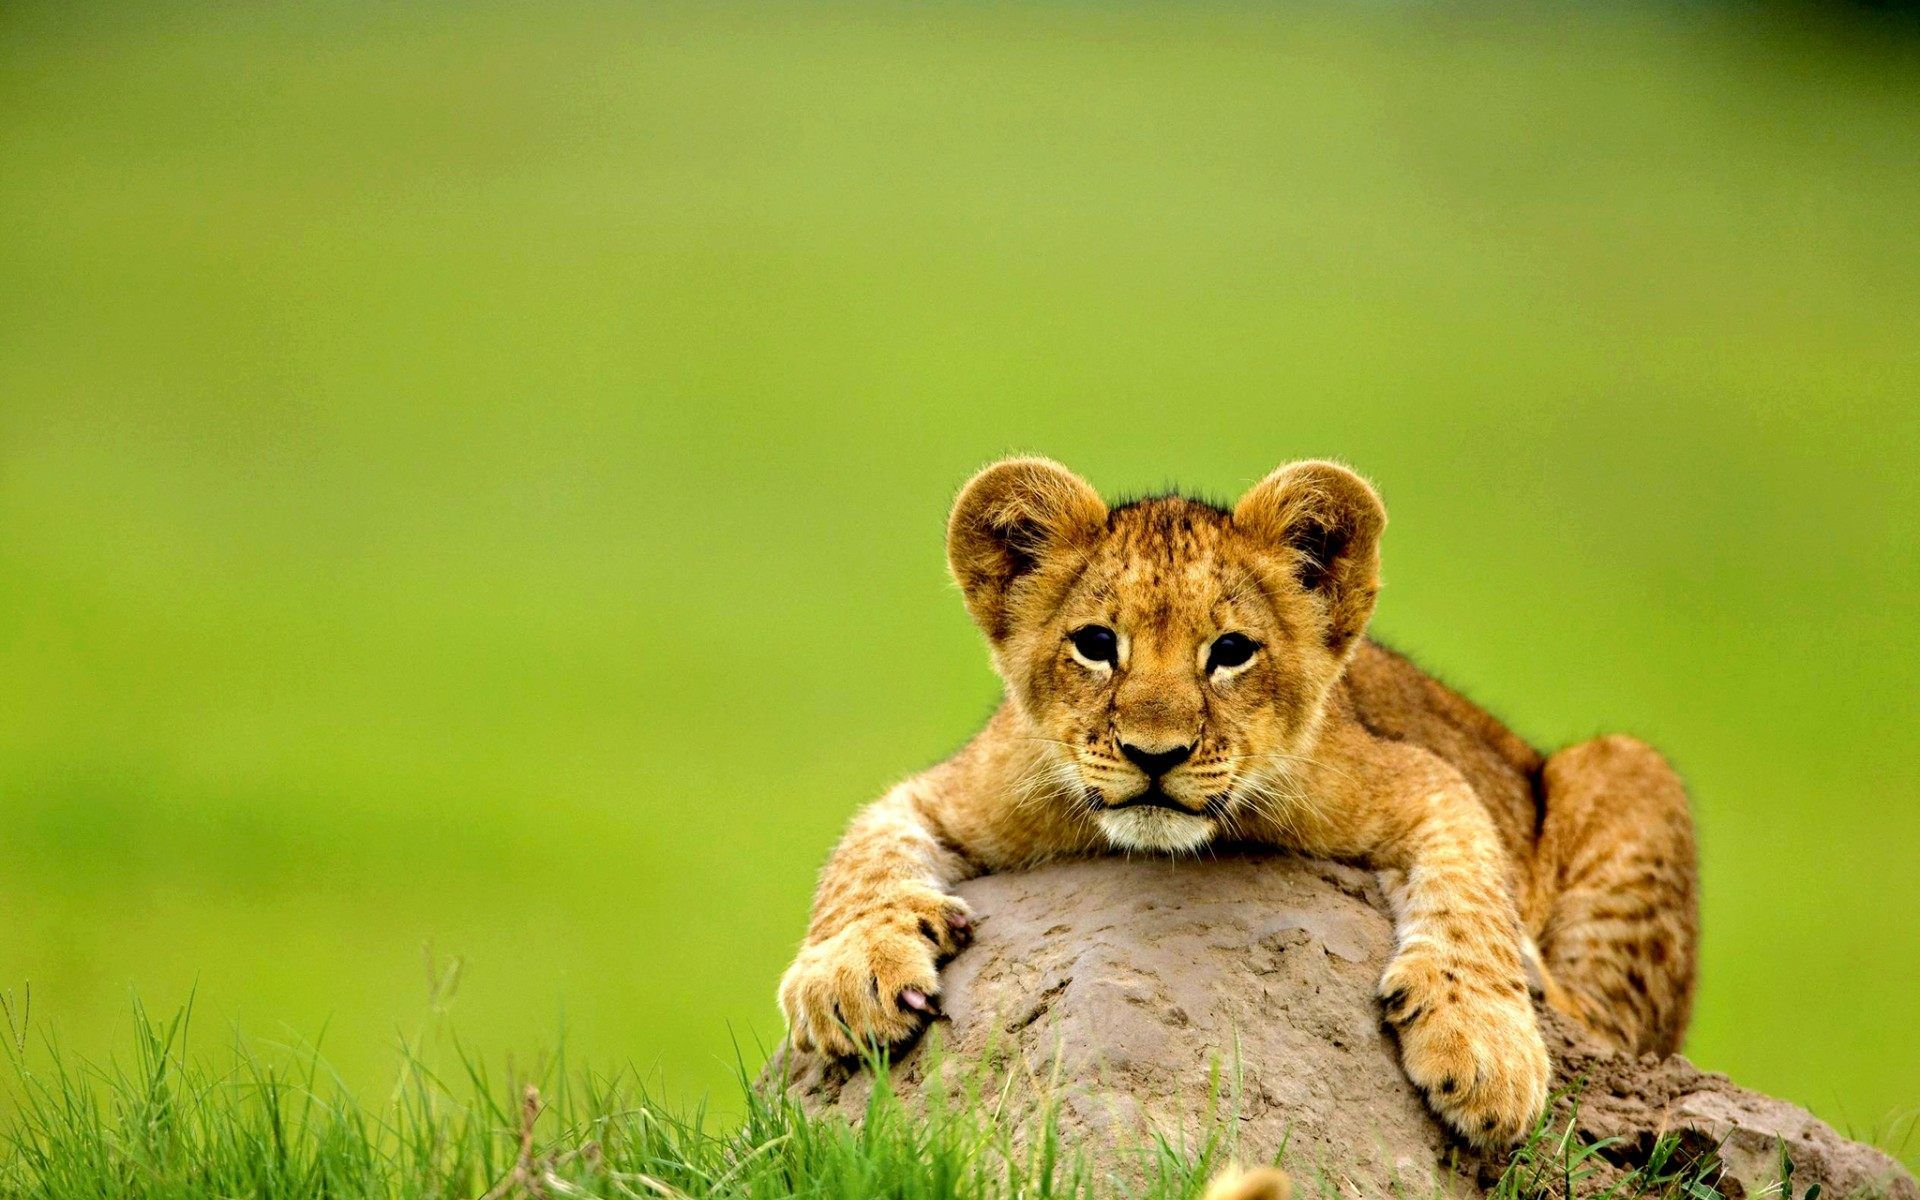 Baby Lion Wallpaper For Desktop Laptop And Mobile In High